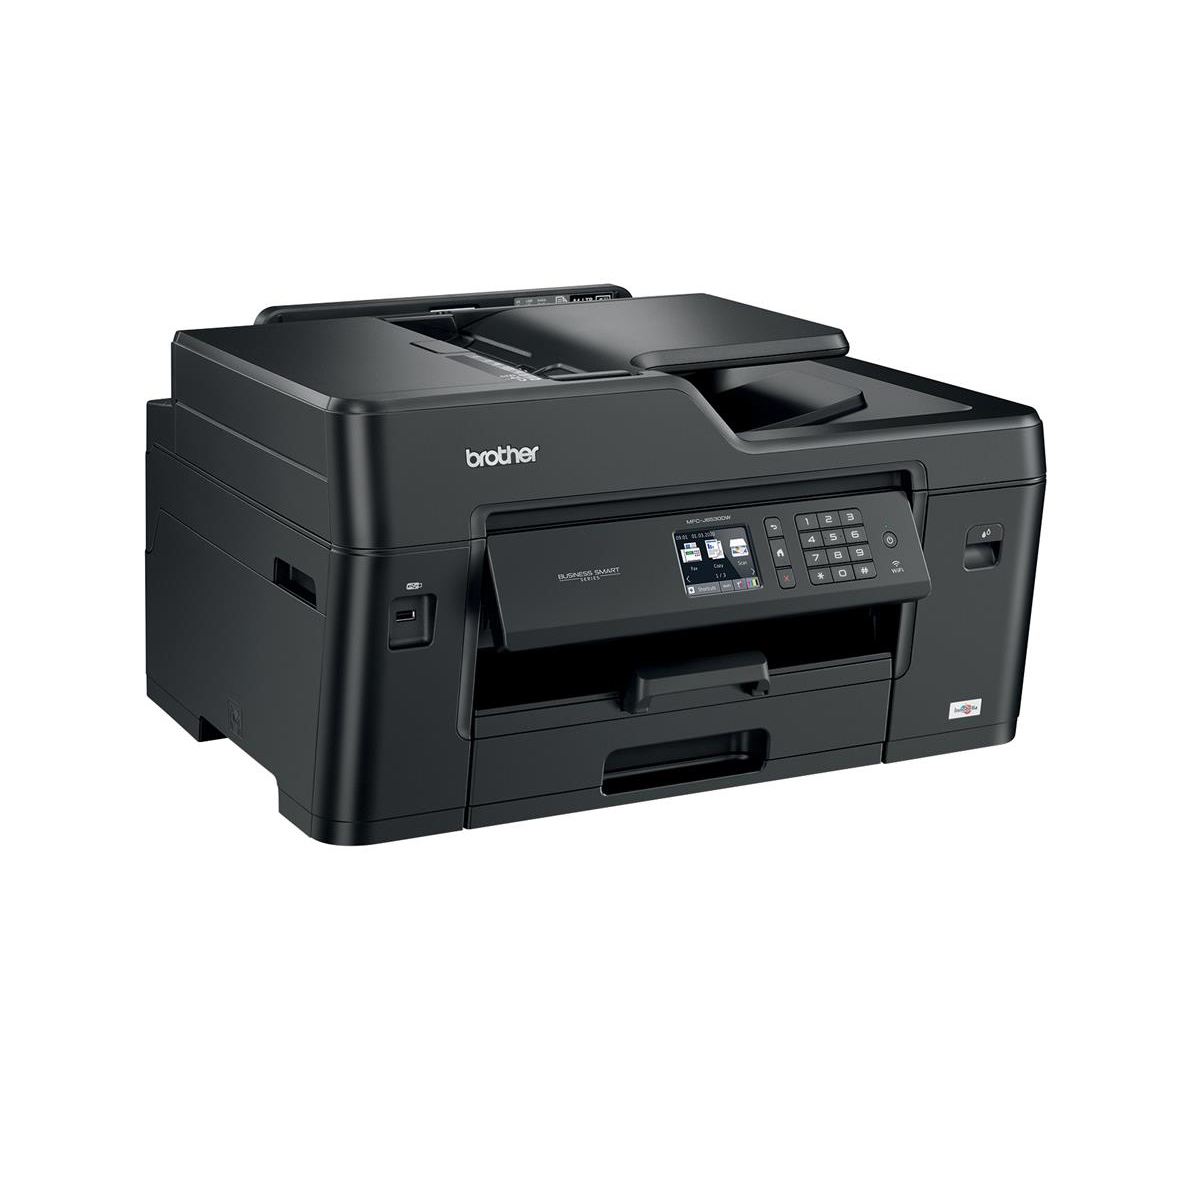 Brother Colour Inkjet Multifunction A3 Printer Ref MFCJ6530DWZU1